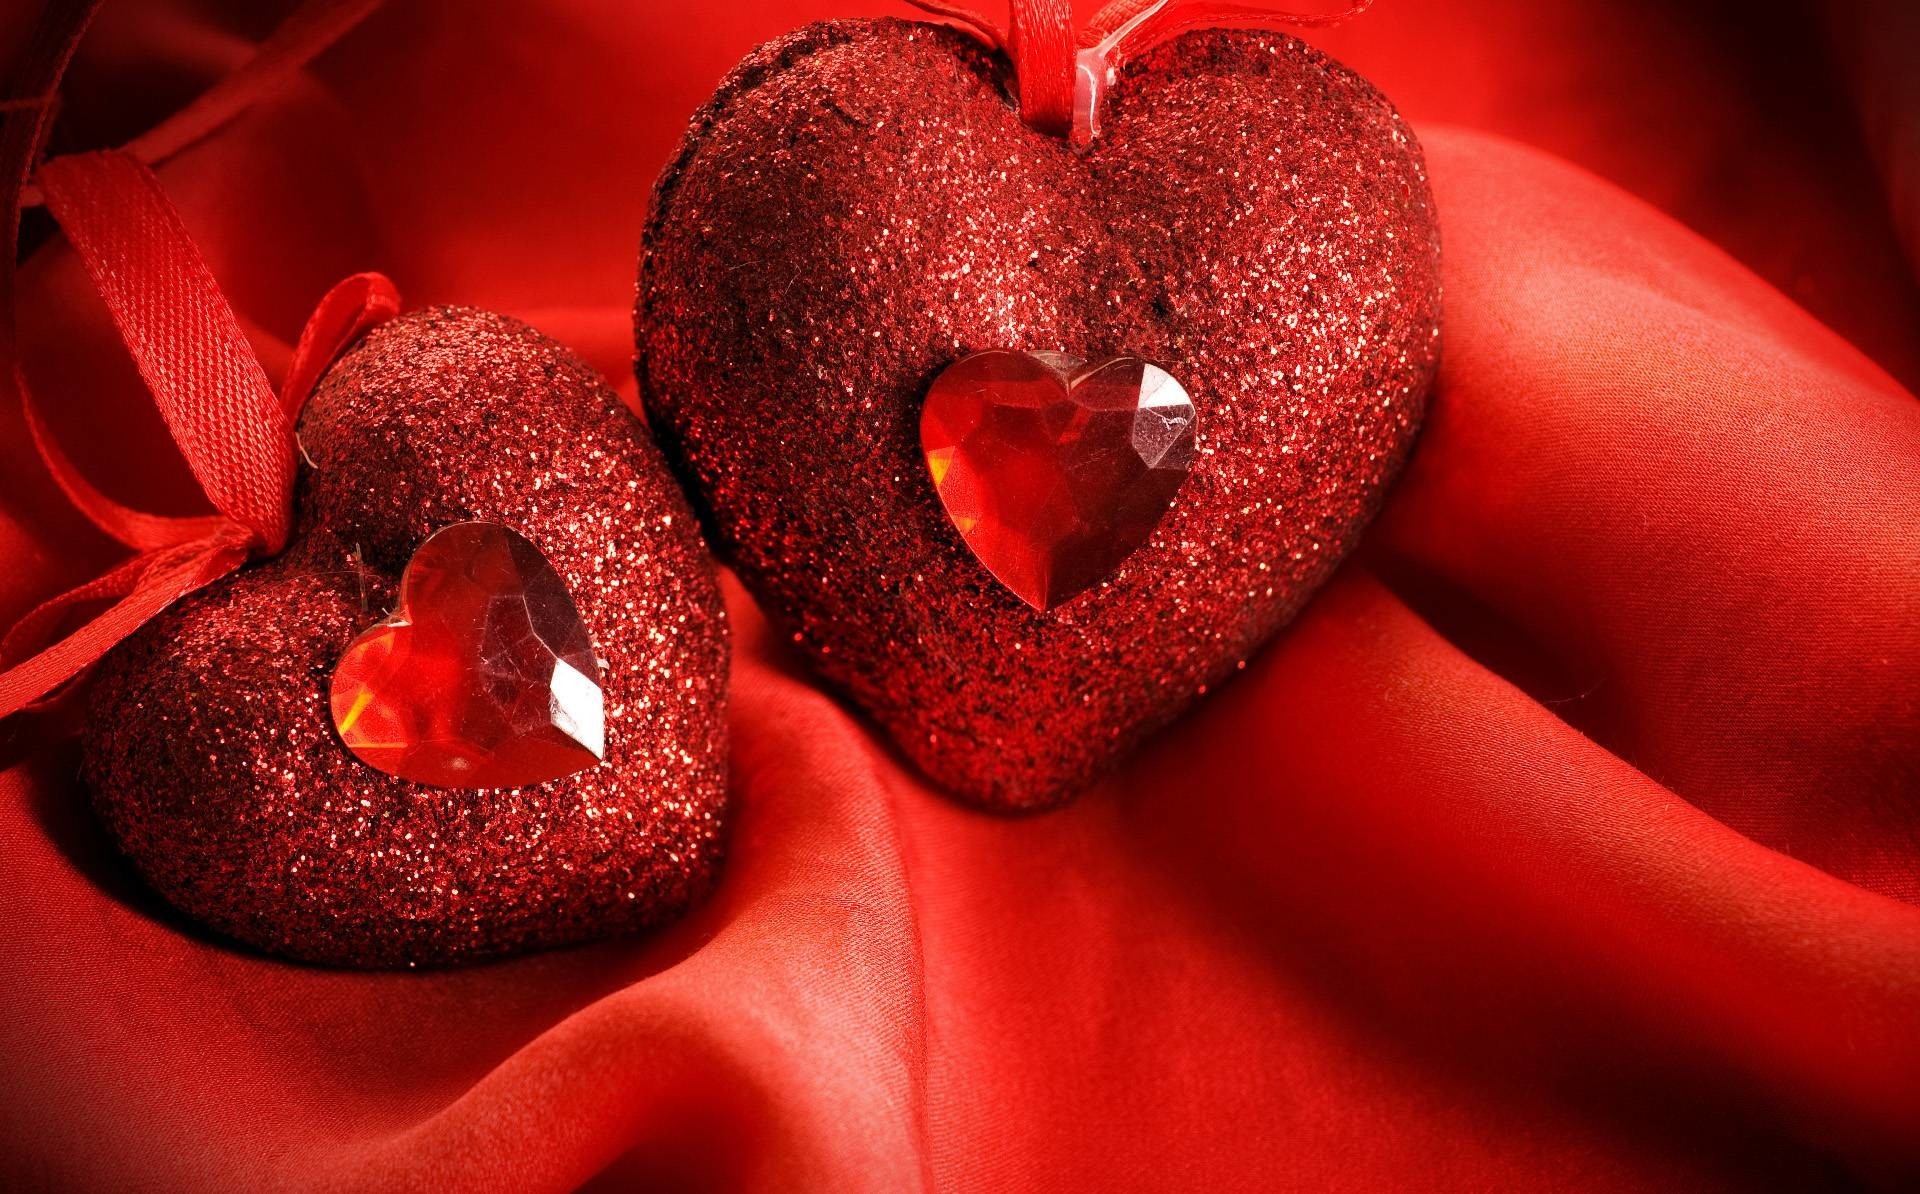 Heart In Love Wallpaper Hd: Hearts Love Wallpapers (58+ Images